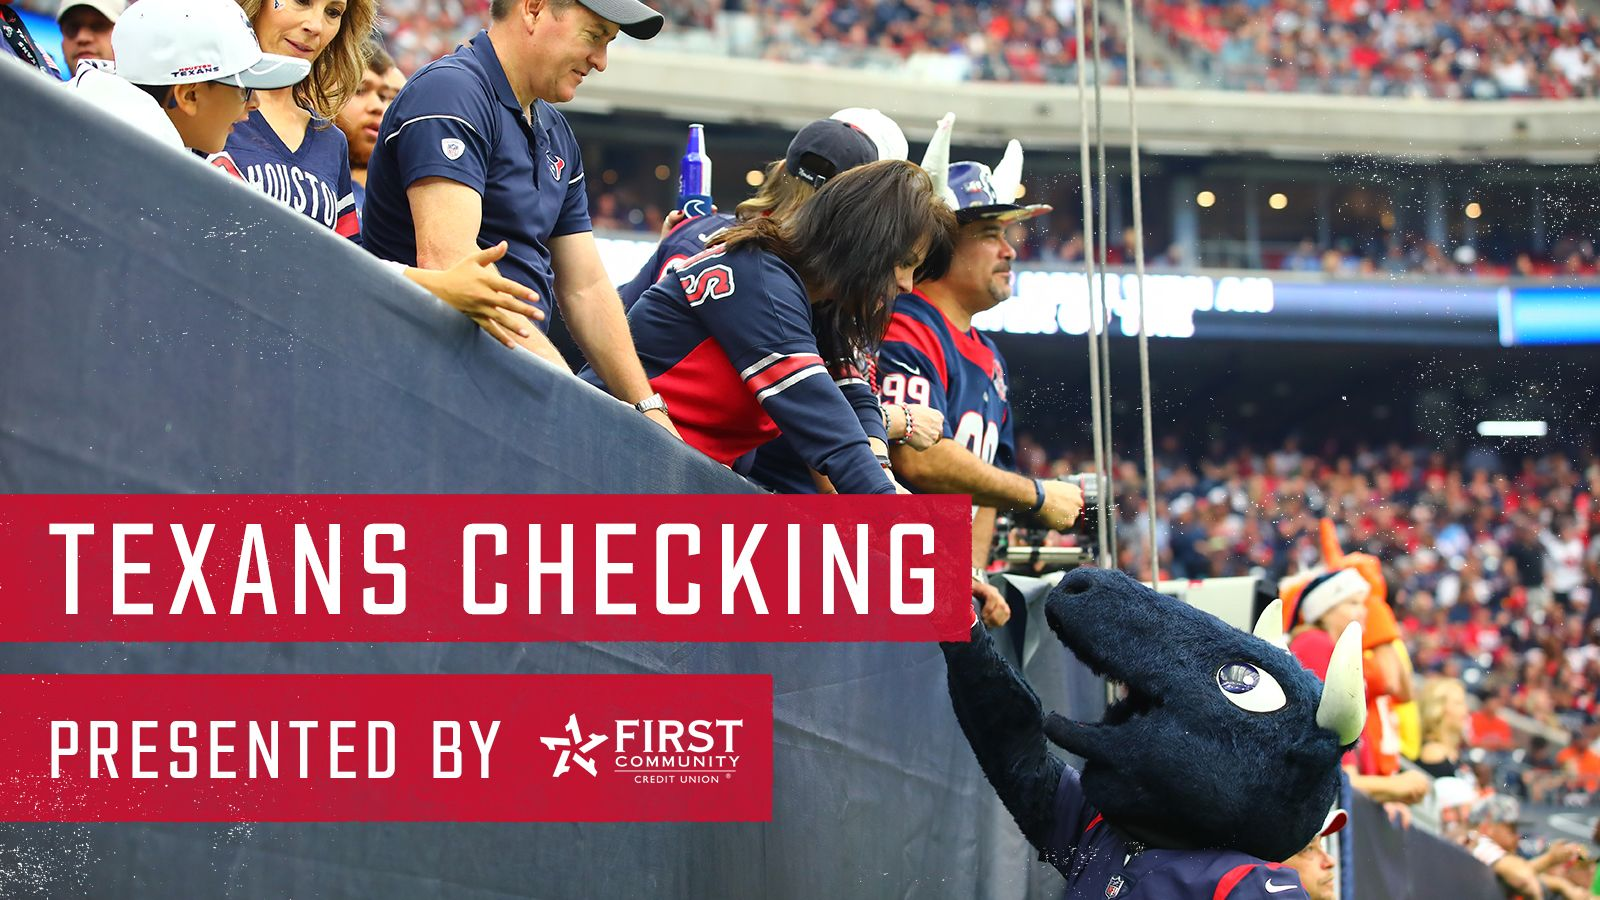 Texans Checking. presented by First Community Credit Union